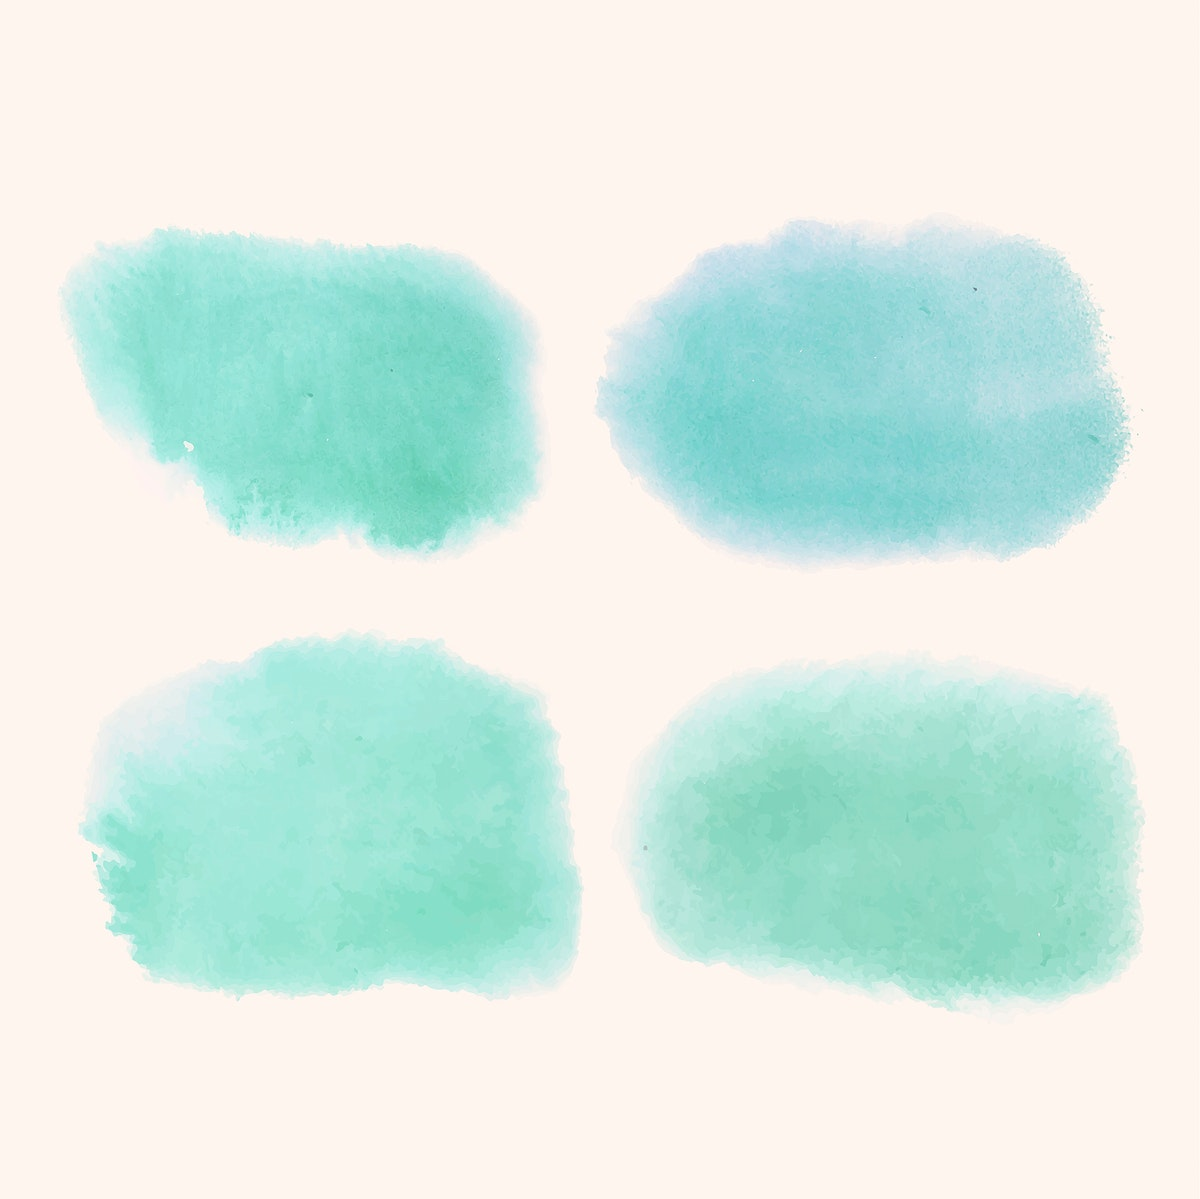 Turquoise watercolor style banner vector